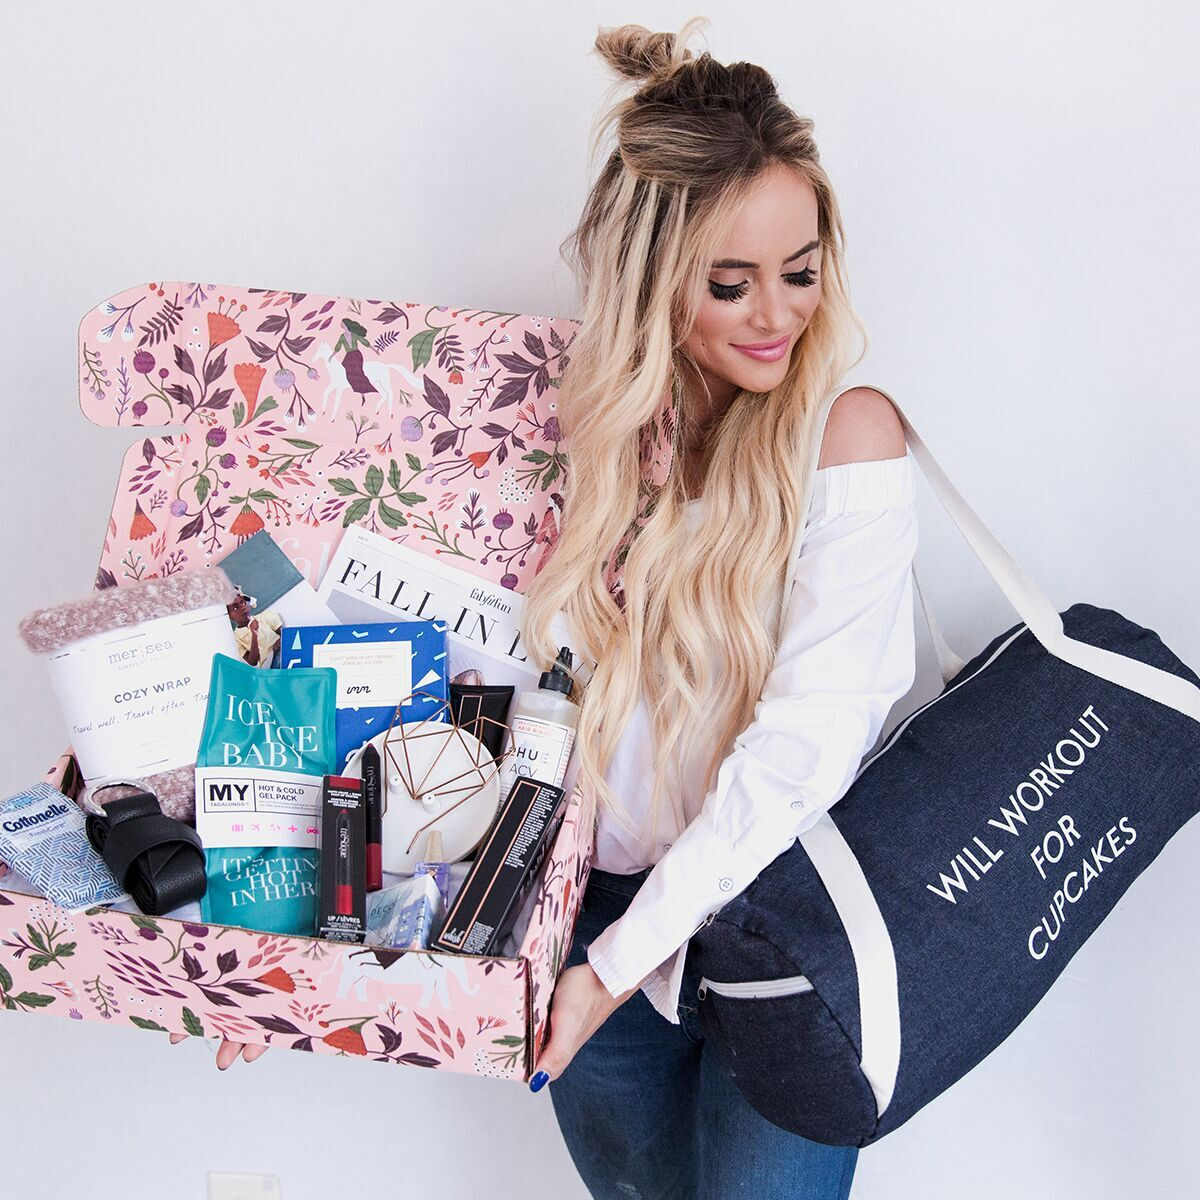 Save $10 off (25% off) your 1st FabFitFun box with  promo code GLAMWAROUS